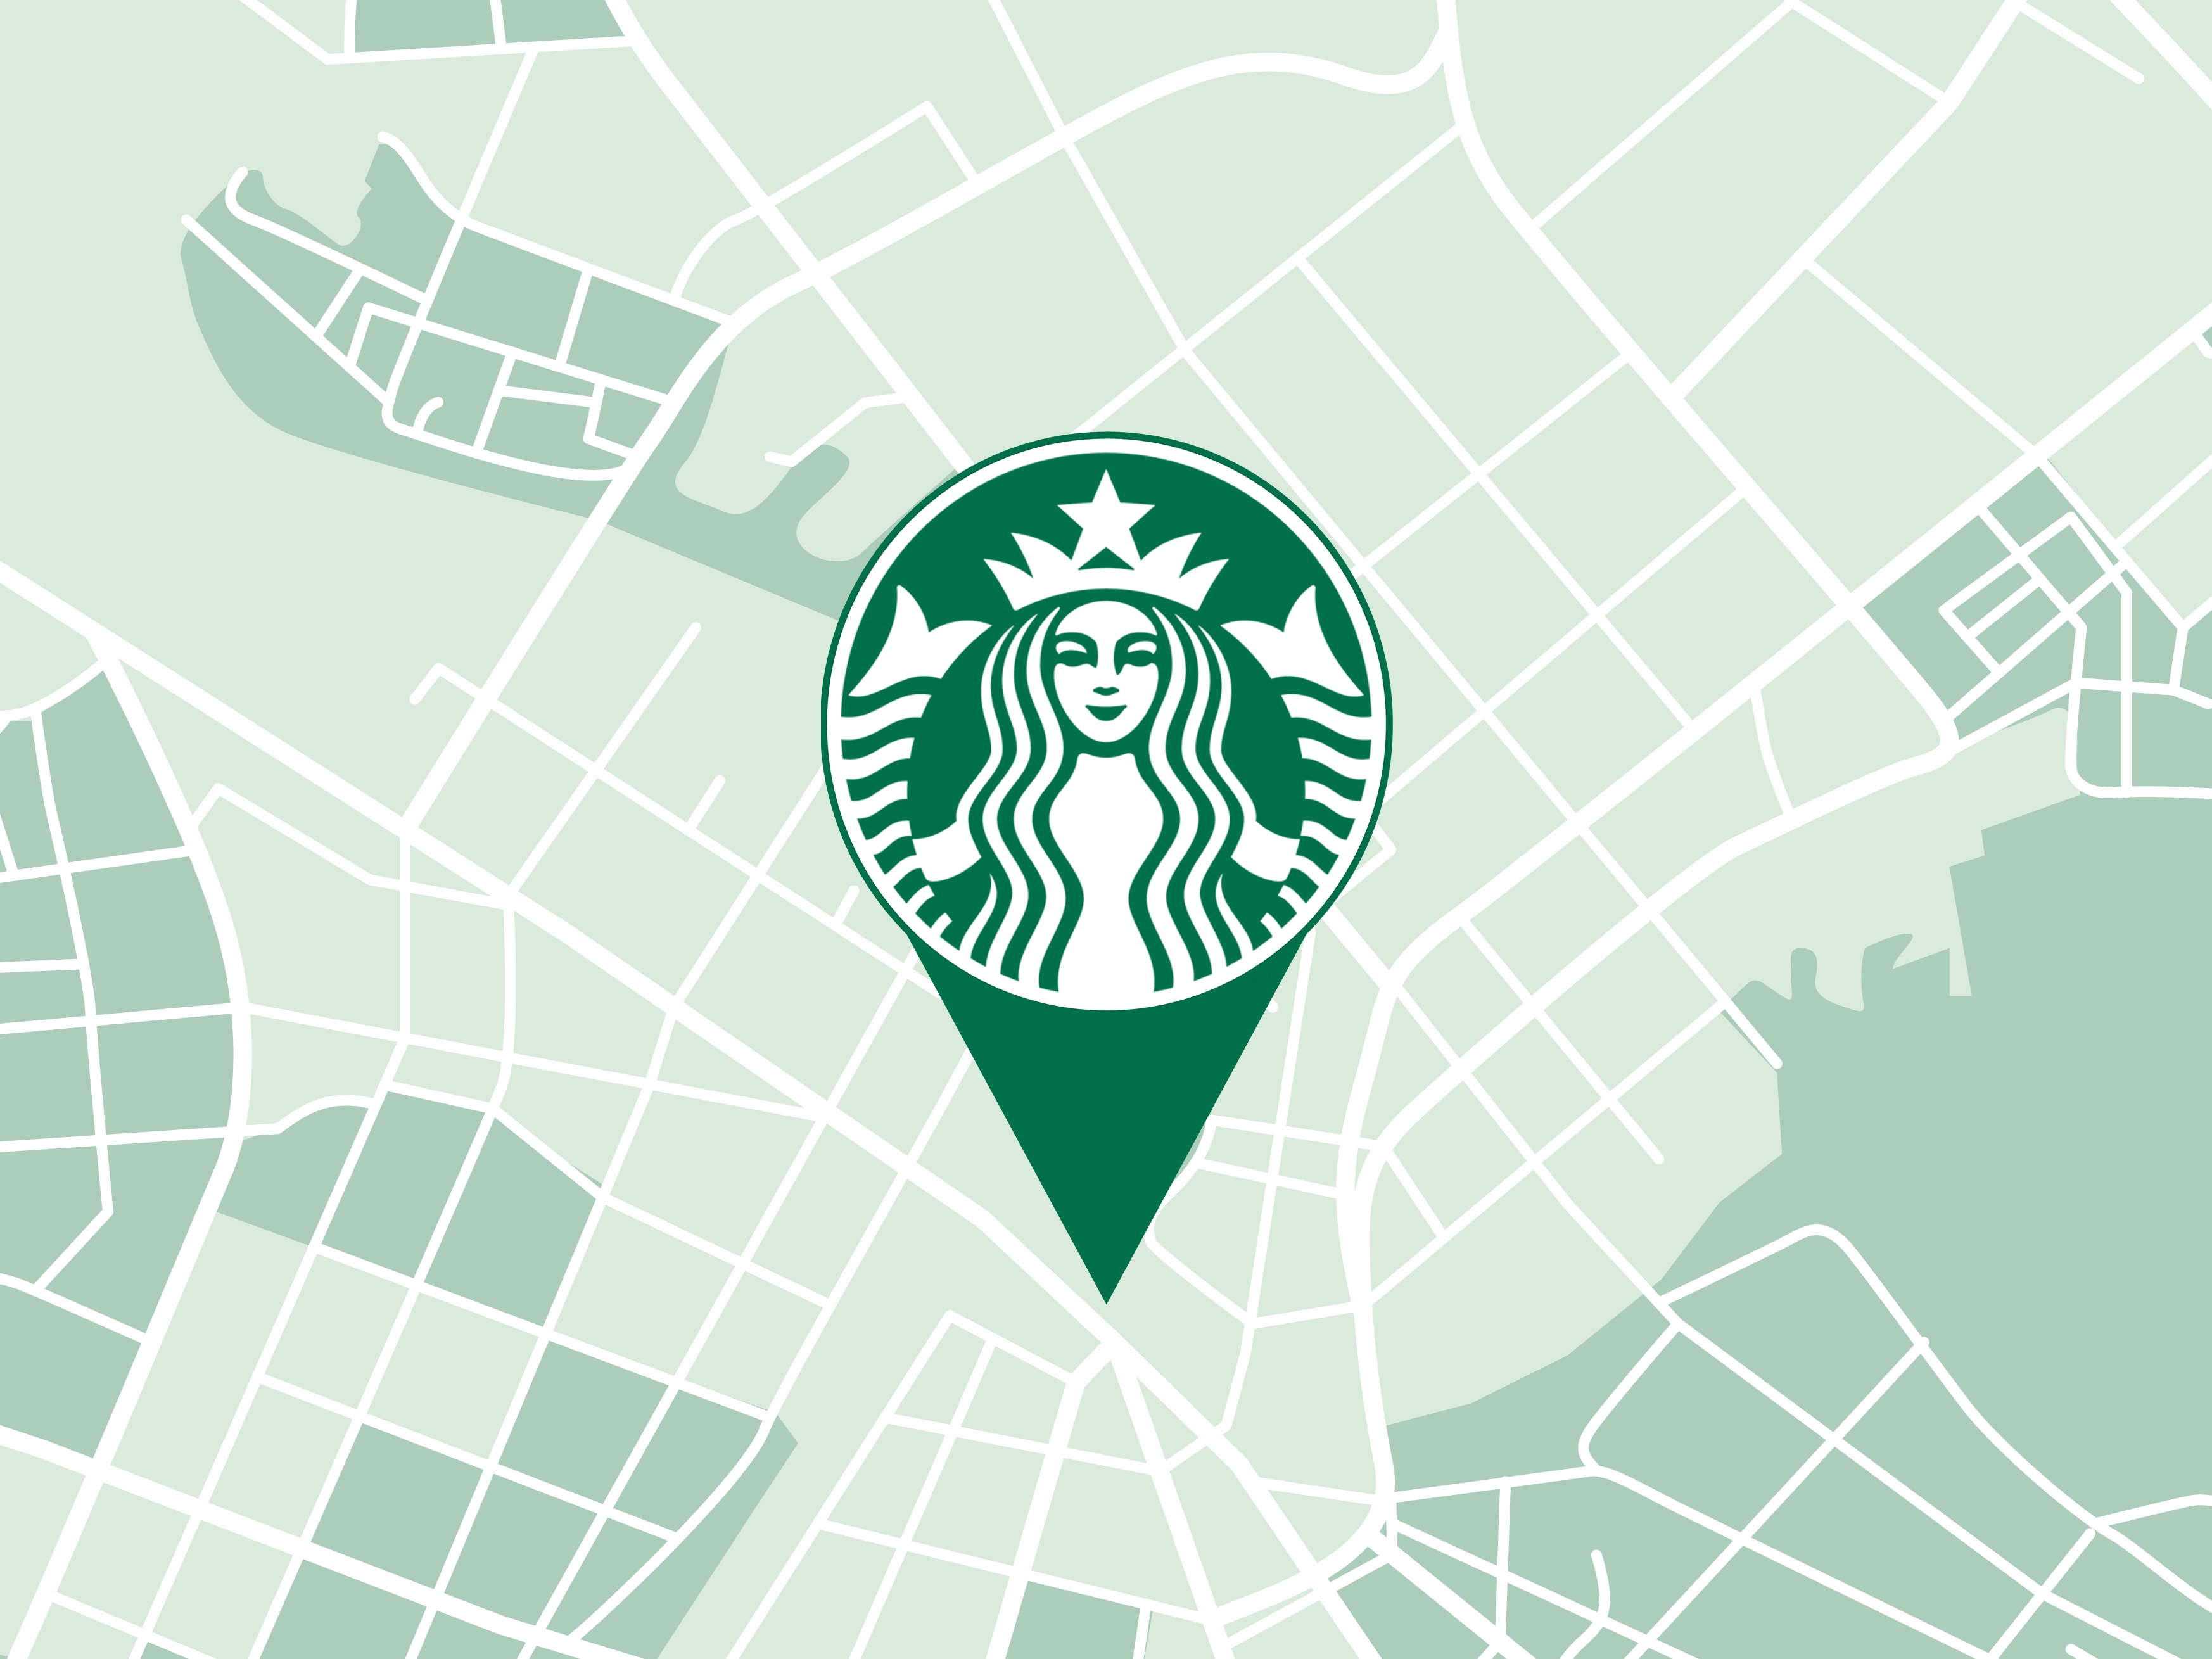 Generic map image with a Starbucks locator pin